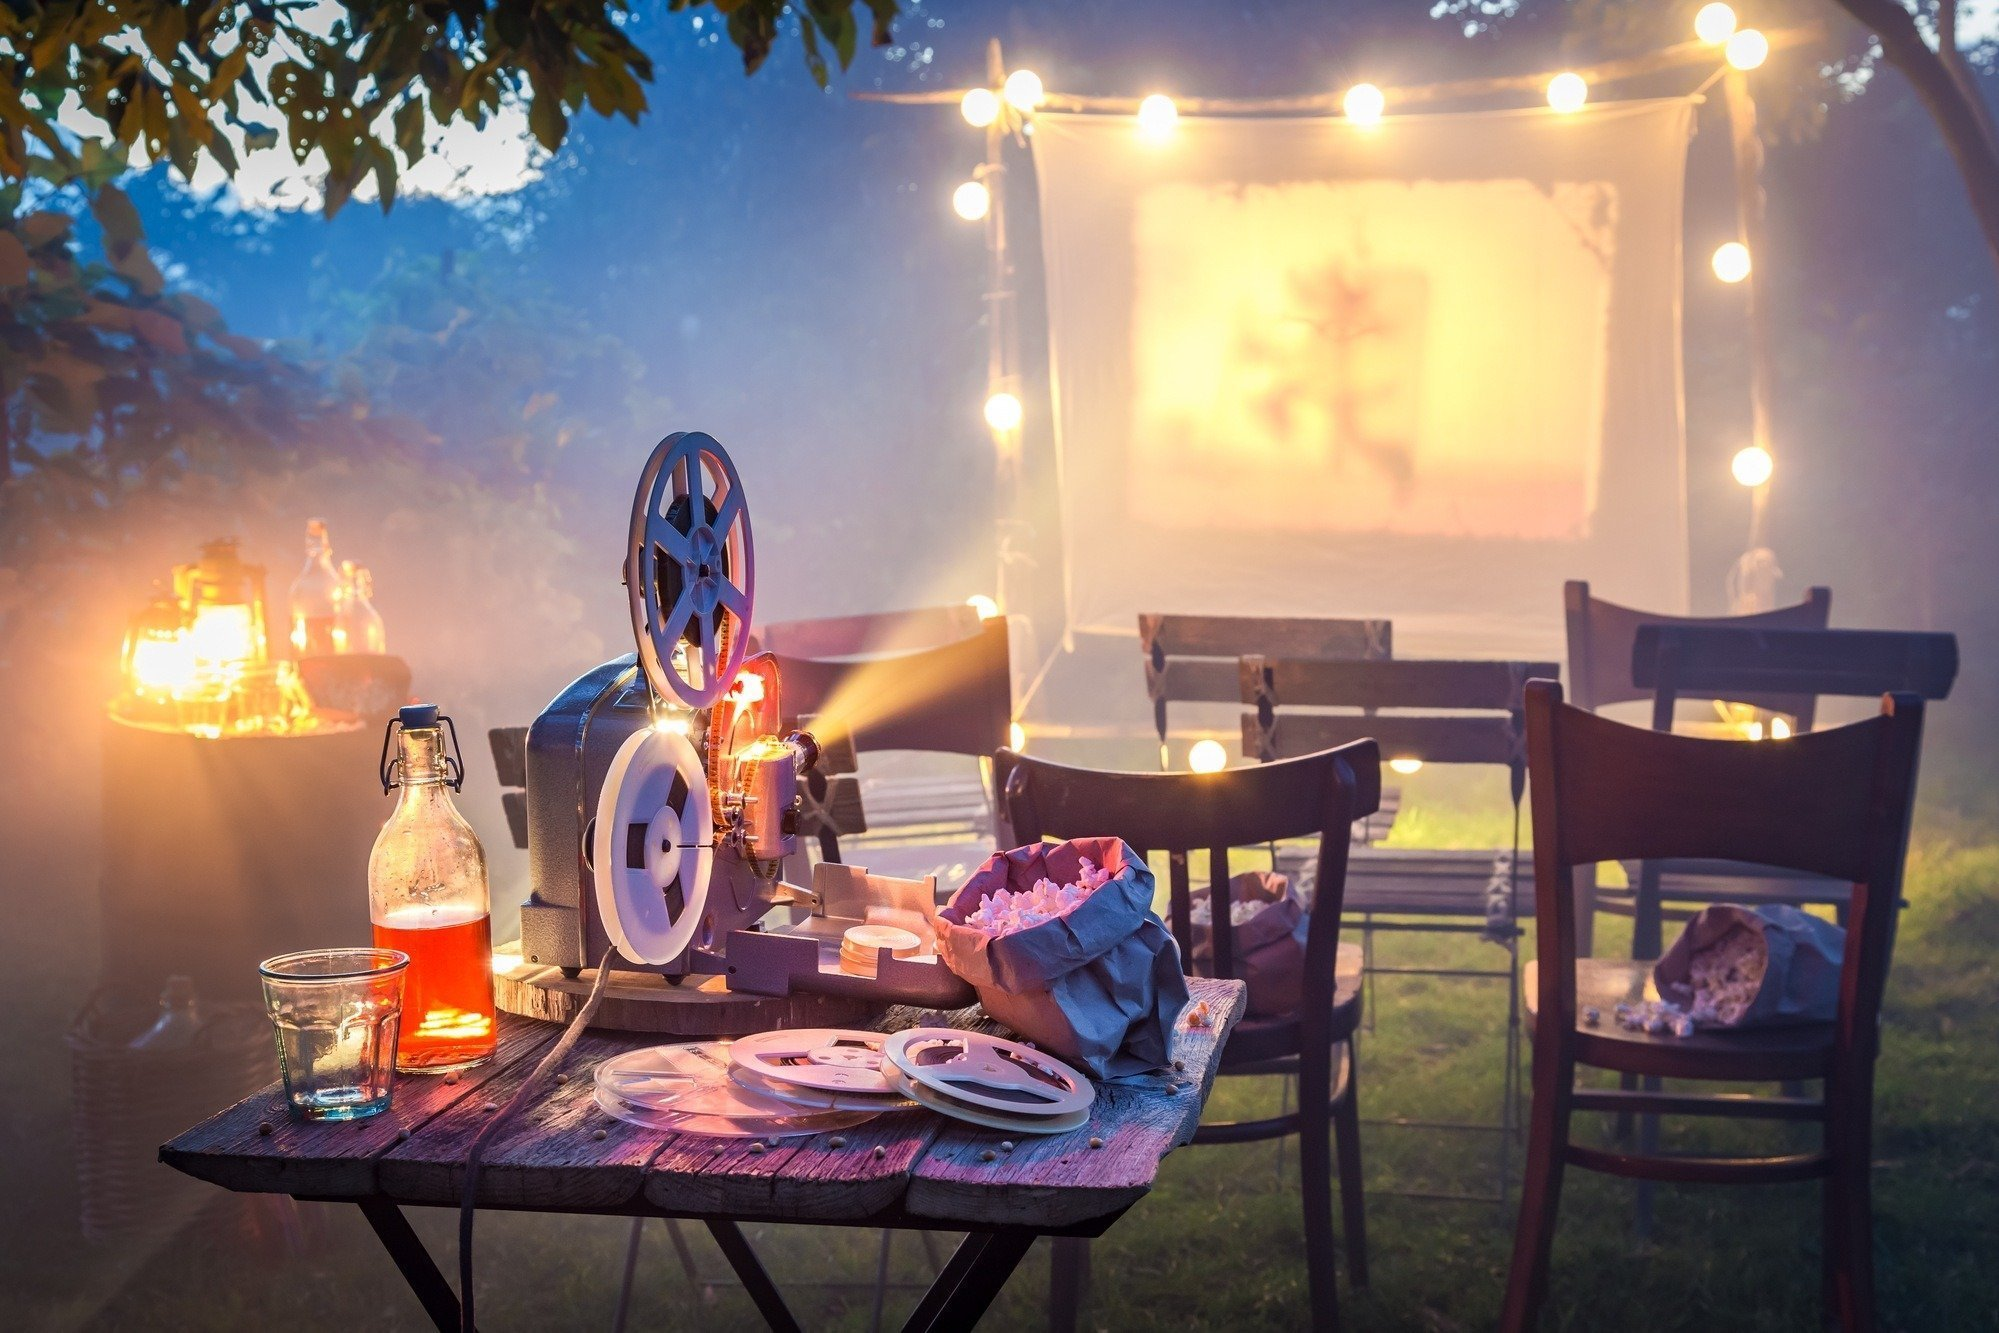 10 Movies You Shouldn't Watch Before Camping